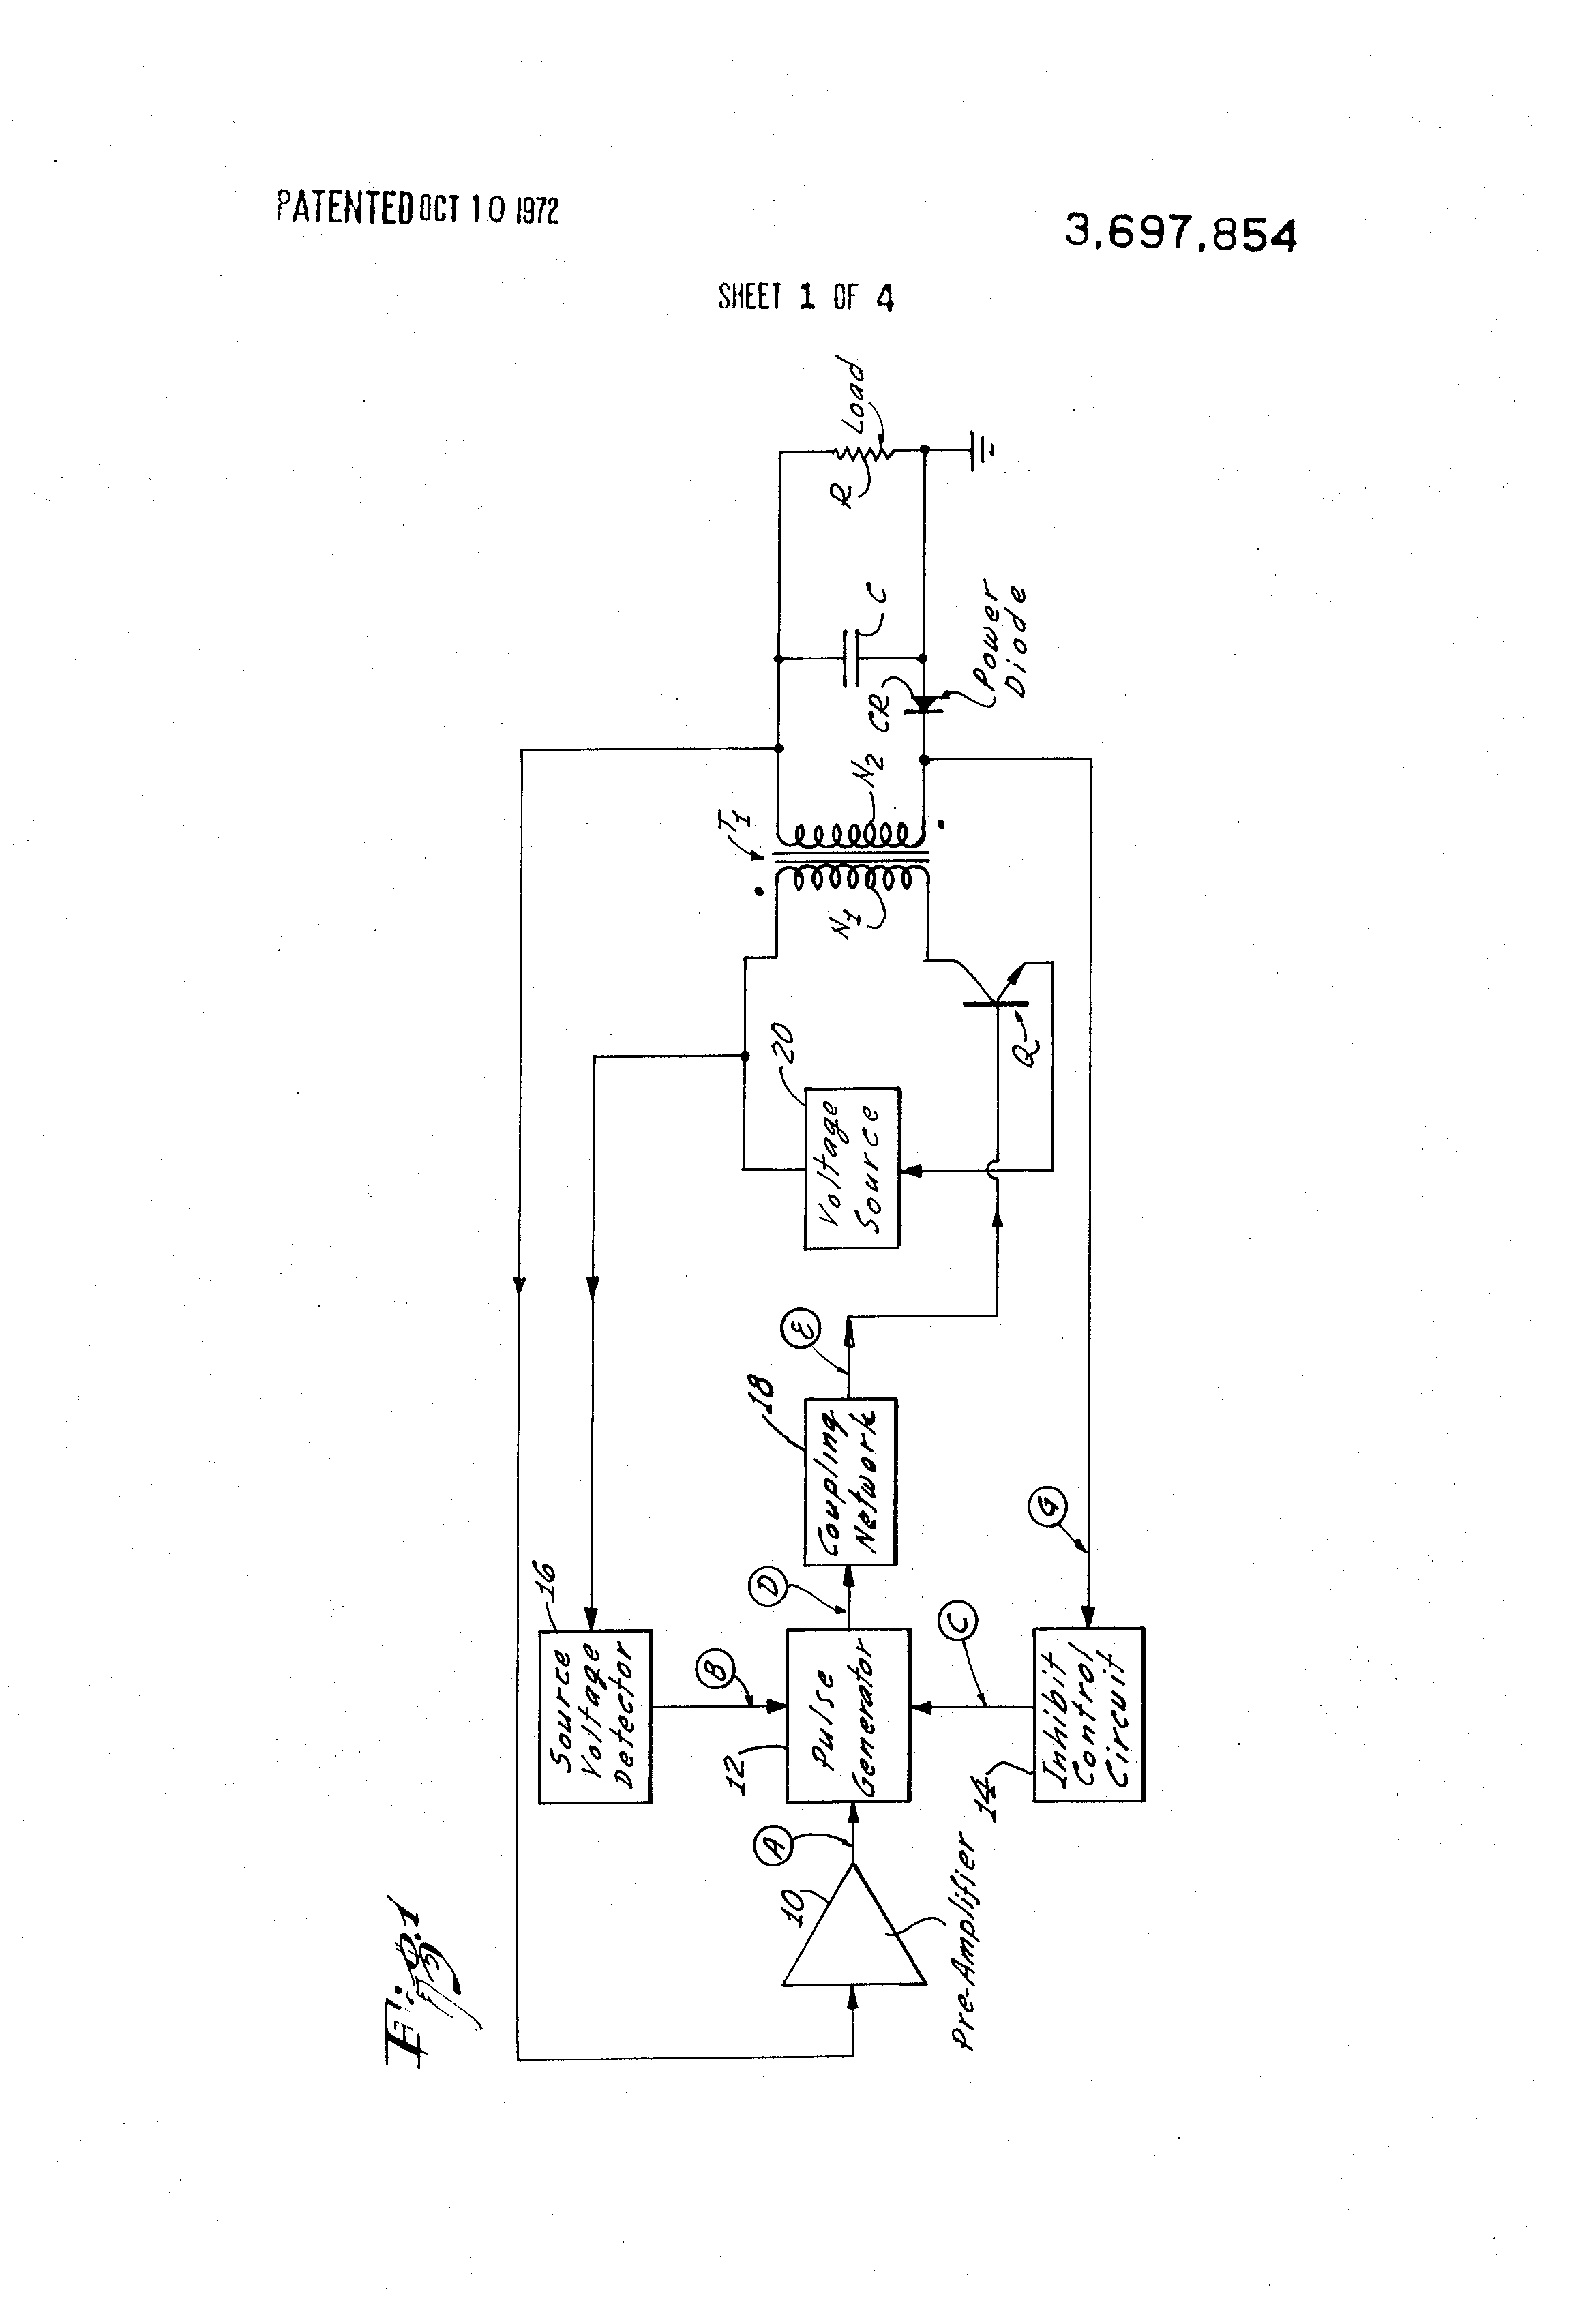 Transistor Current Control Circuit Diagram Controlcircuit 4 Seekiccom Patent Us3697854 Regulated Dc Power Supply Google Patents